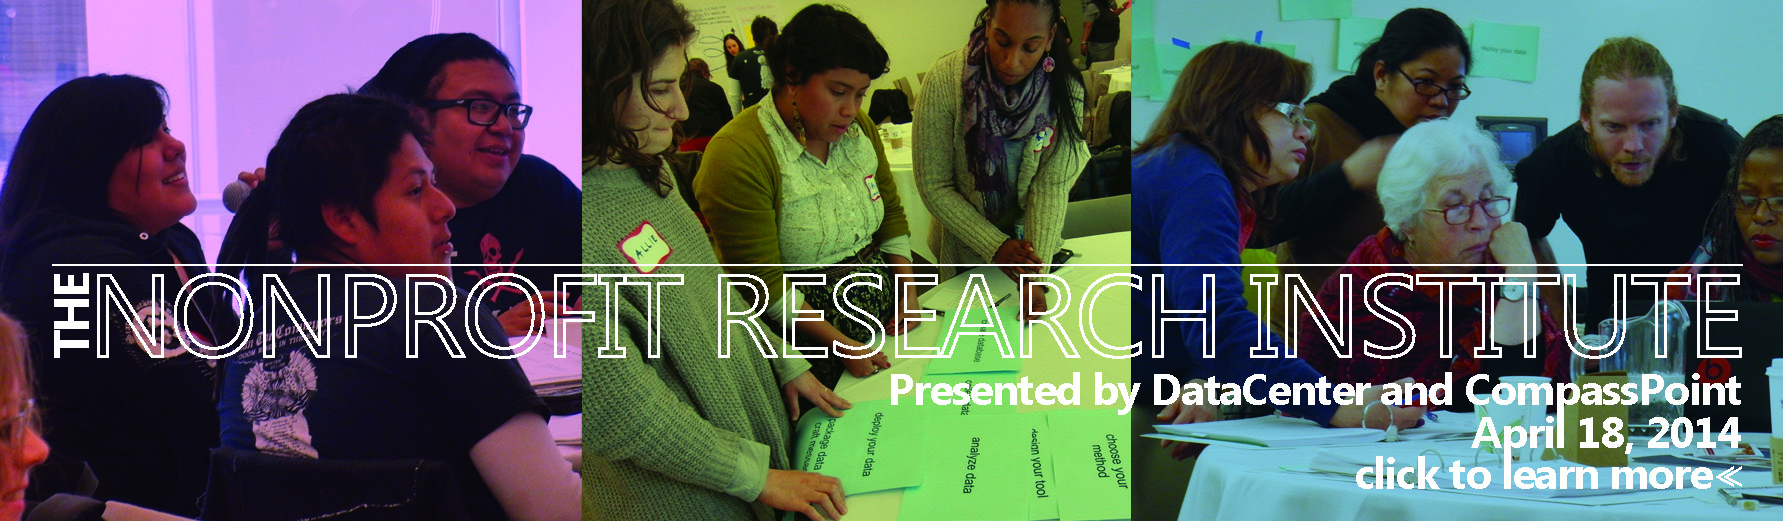 The Nonprofit Research Institute